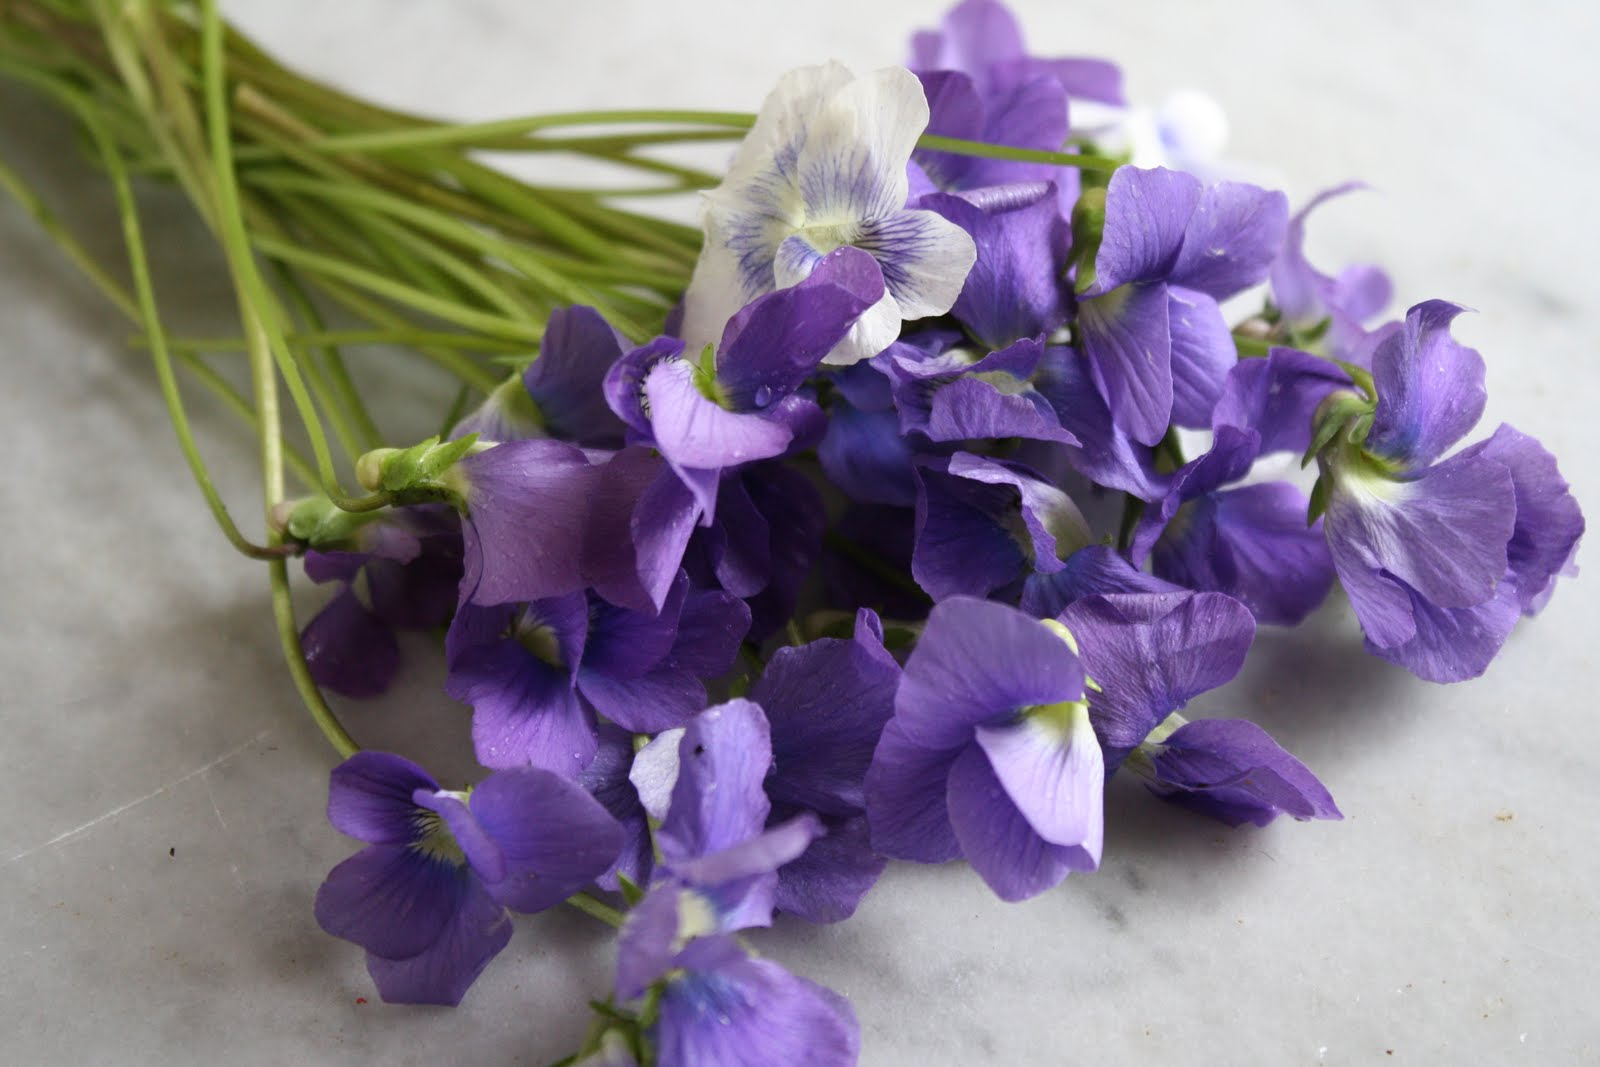 the violets Violet is the sixth color of the rainbow--it is the color on the inner edge of the rainbowviolet is the color between blue and purplethe name of the color comes from the violet, which is a.